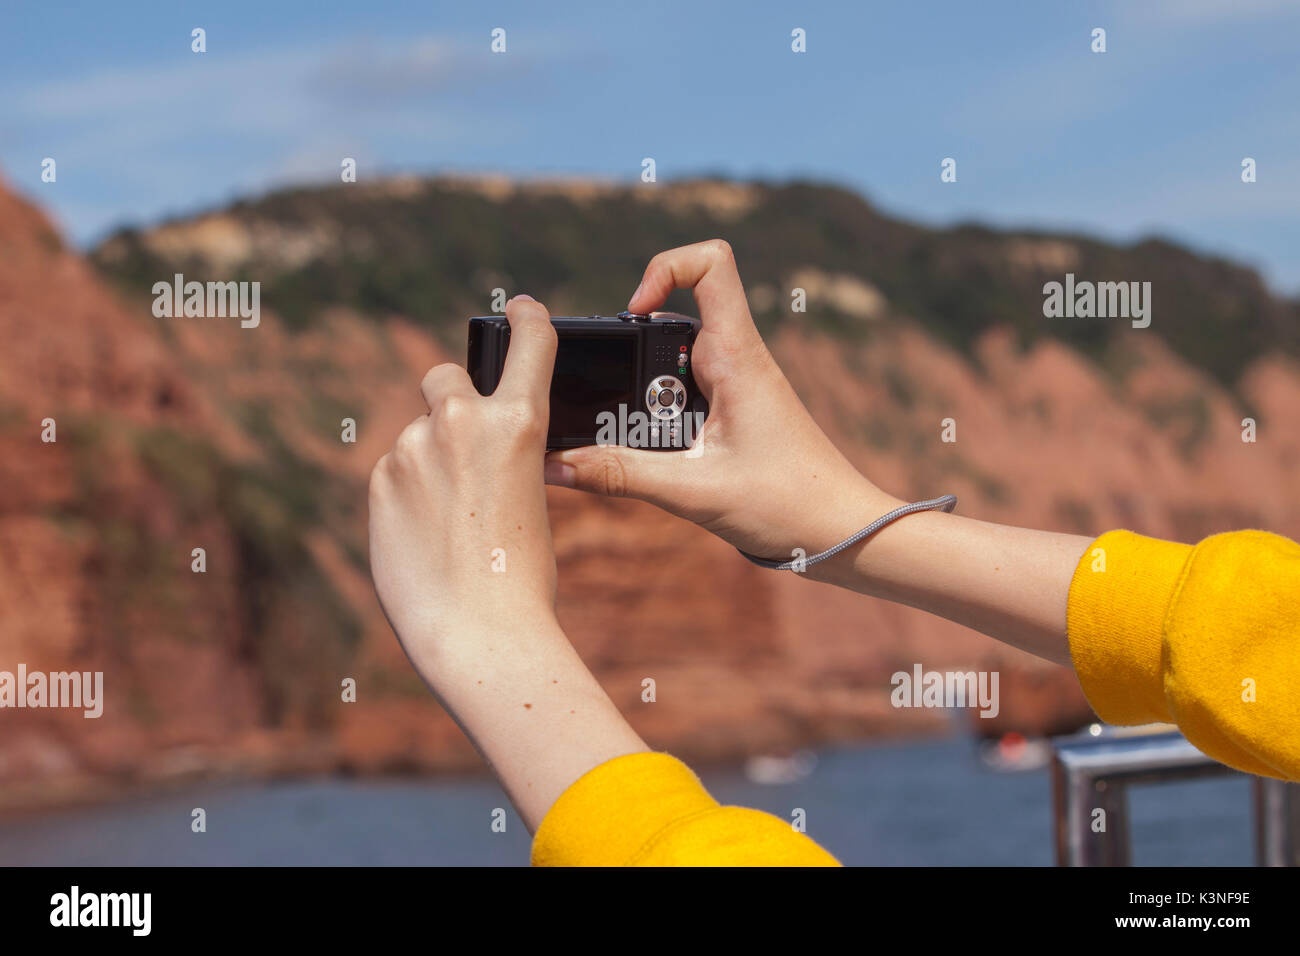 A pair of hands taking pictures of a seaside cliff face with a digital camera. - Stock Image